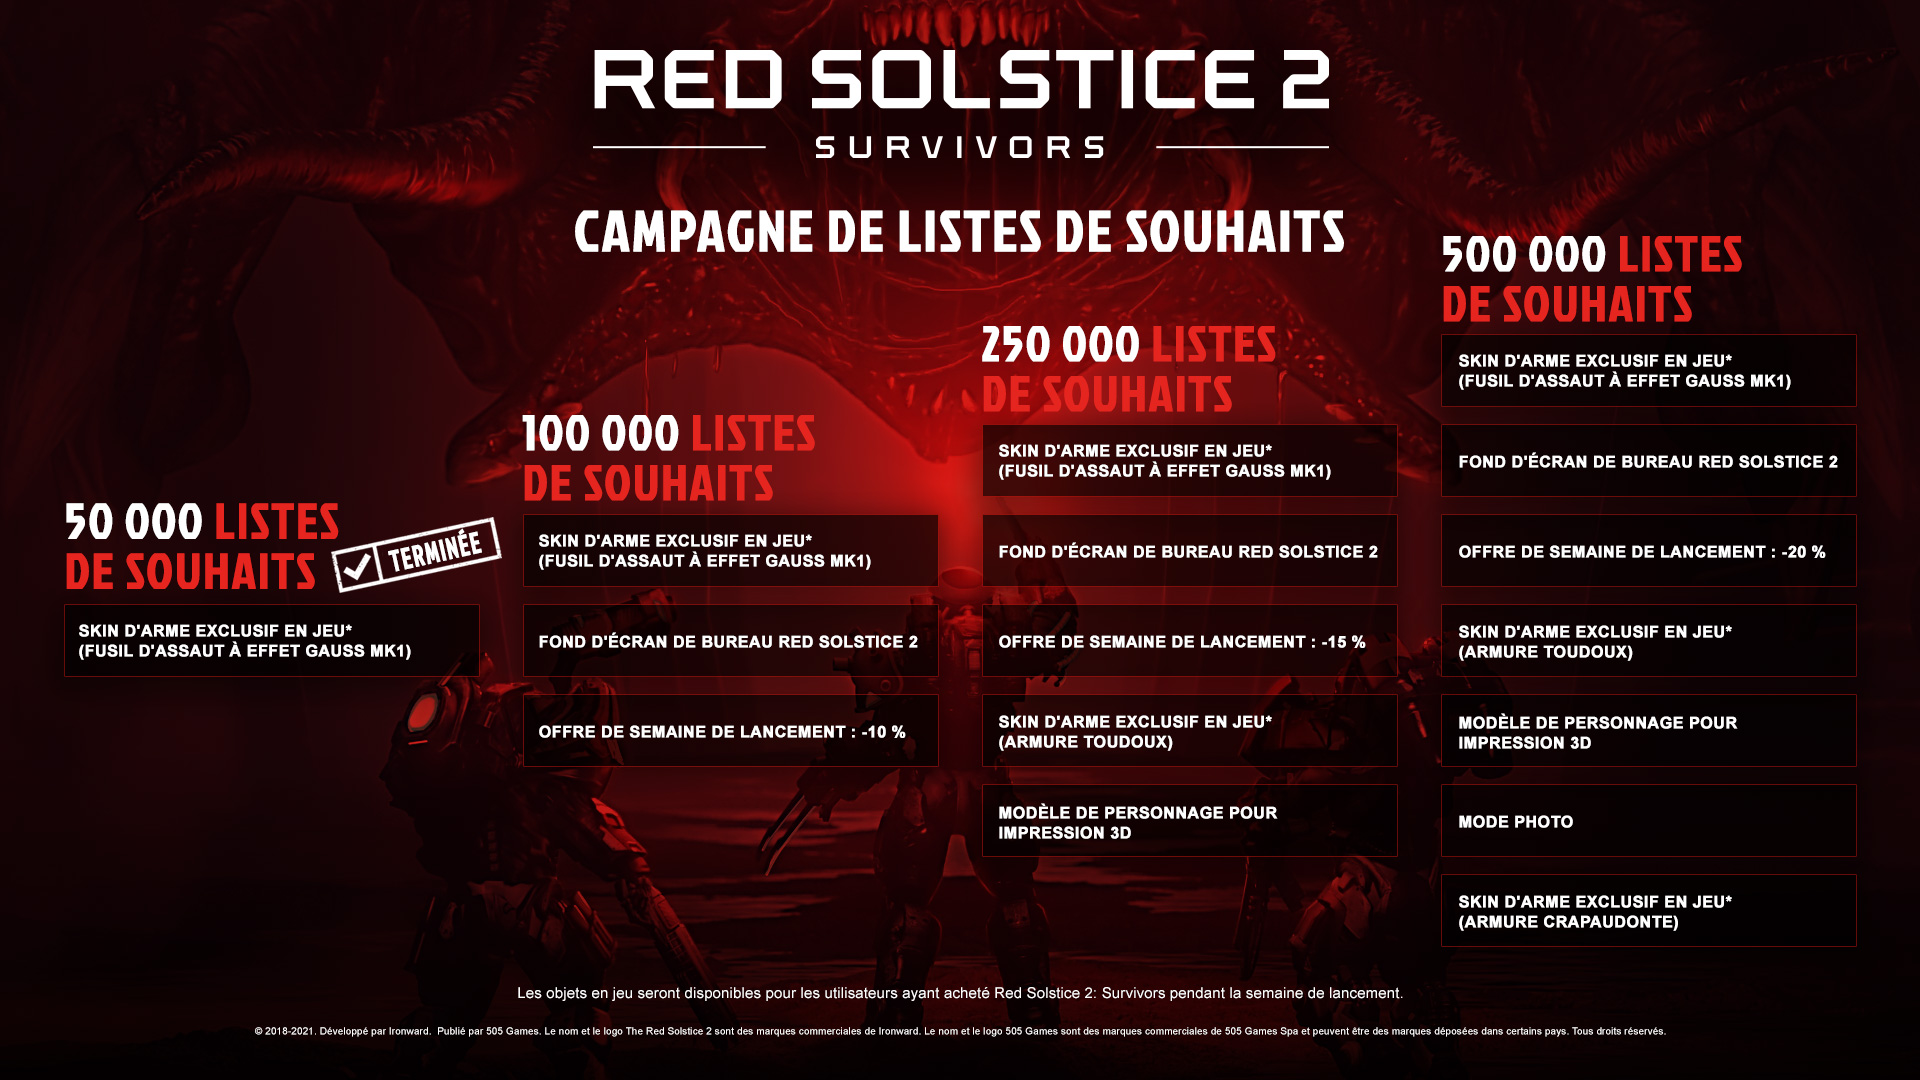 red-solstice-2-campaign